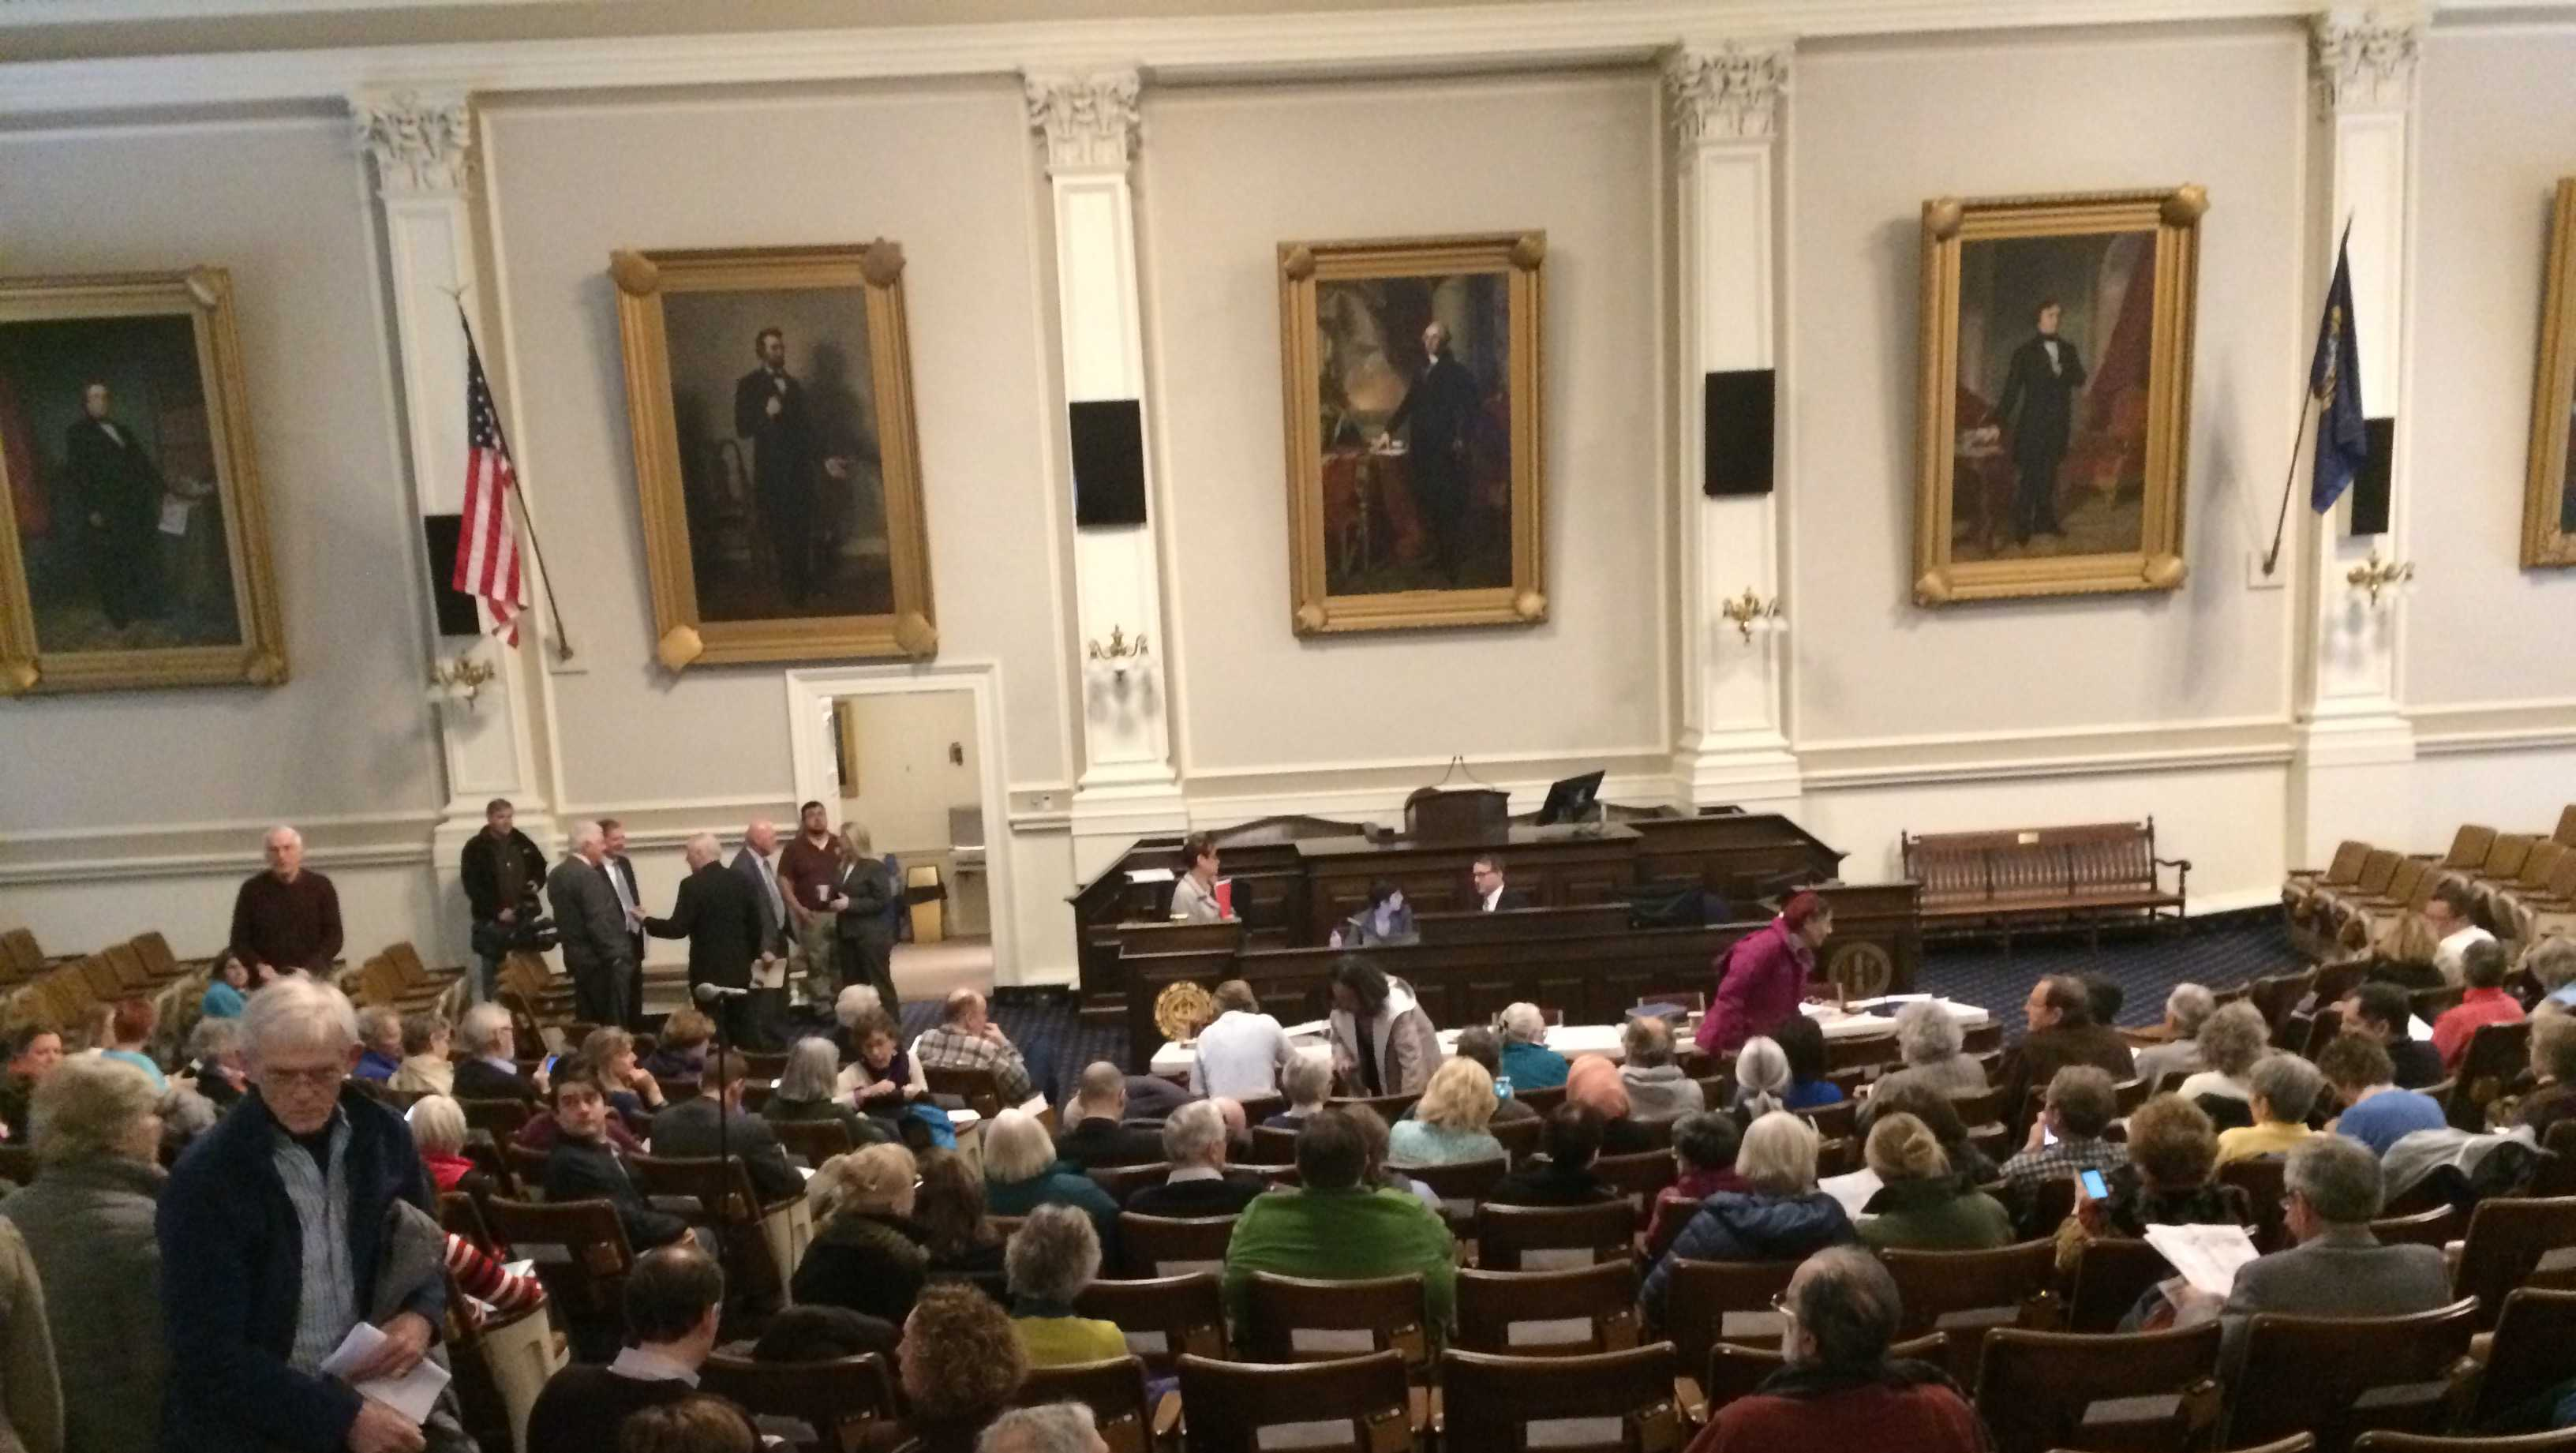 A large crowd turned out at Representatives Hall at the State House on Tuesday for a Senate Election Law Committee public hearing on an election law reform bill.